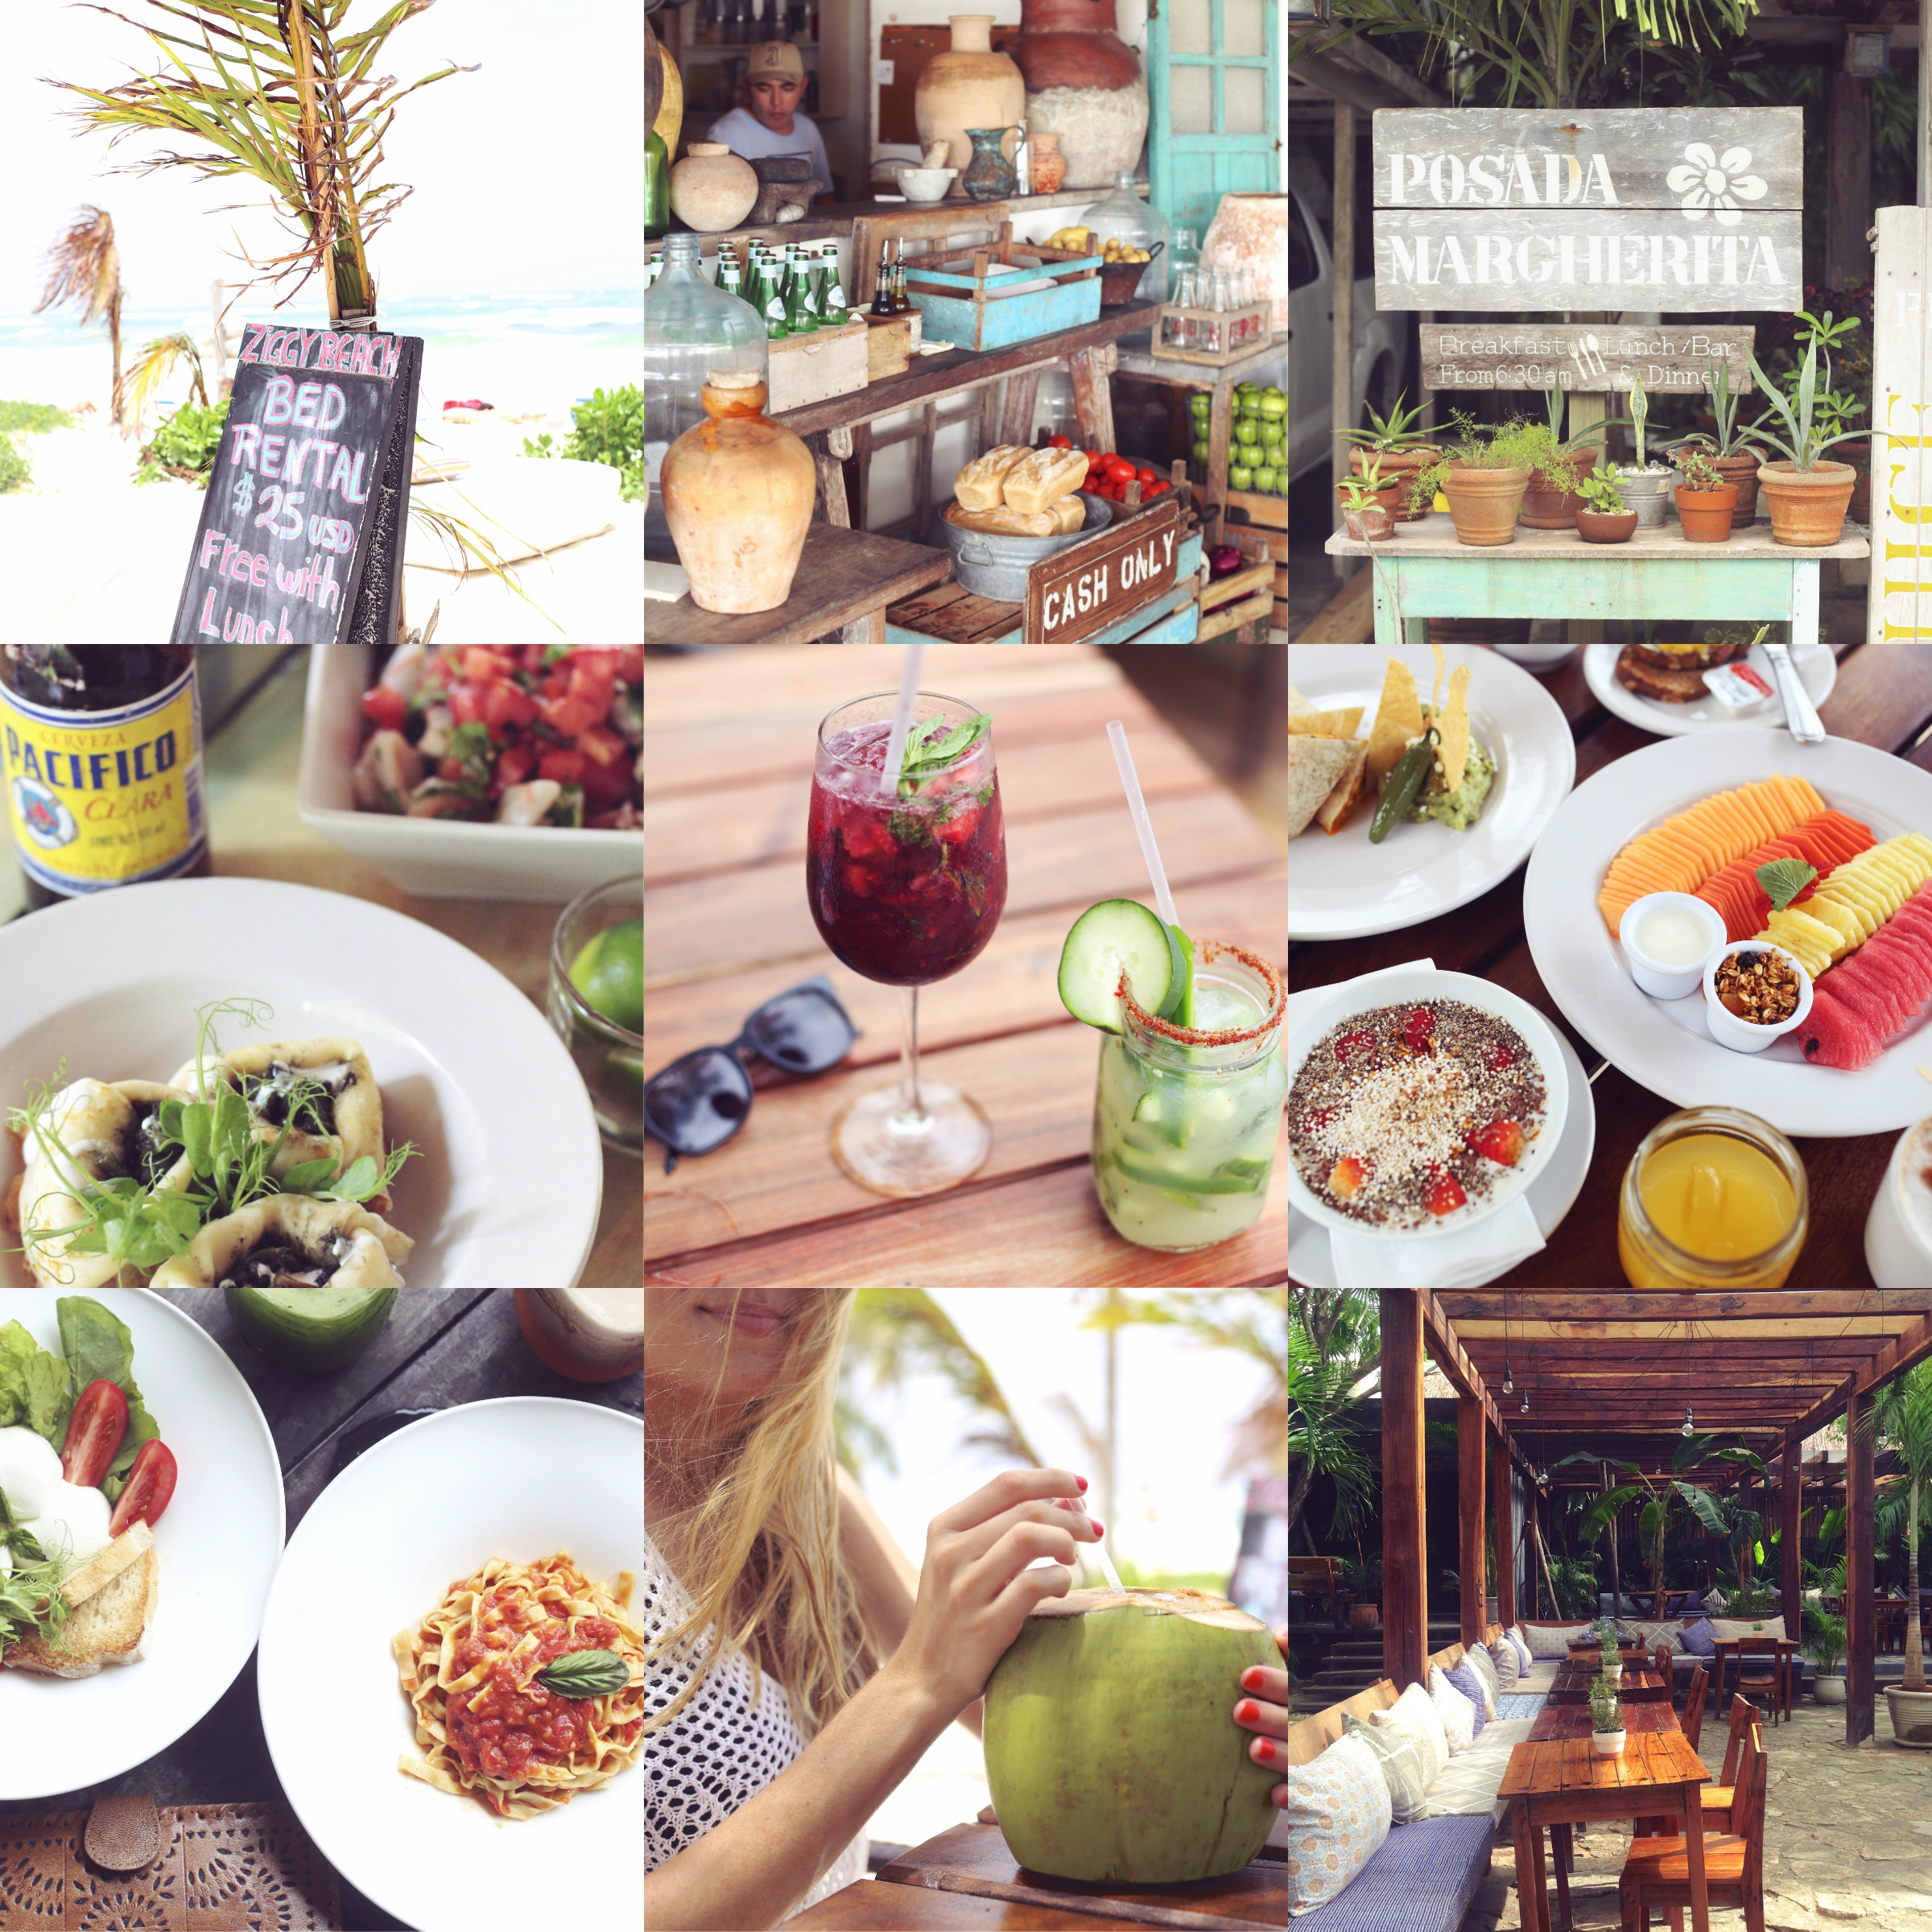 Tulum Travel Guide - Where to eat in Tulum, Mexico.